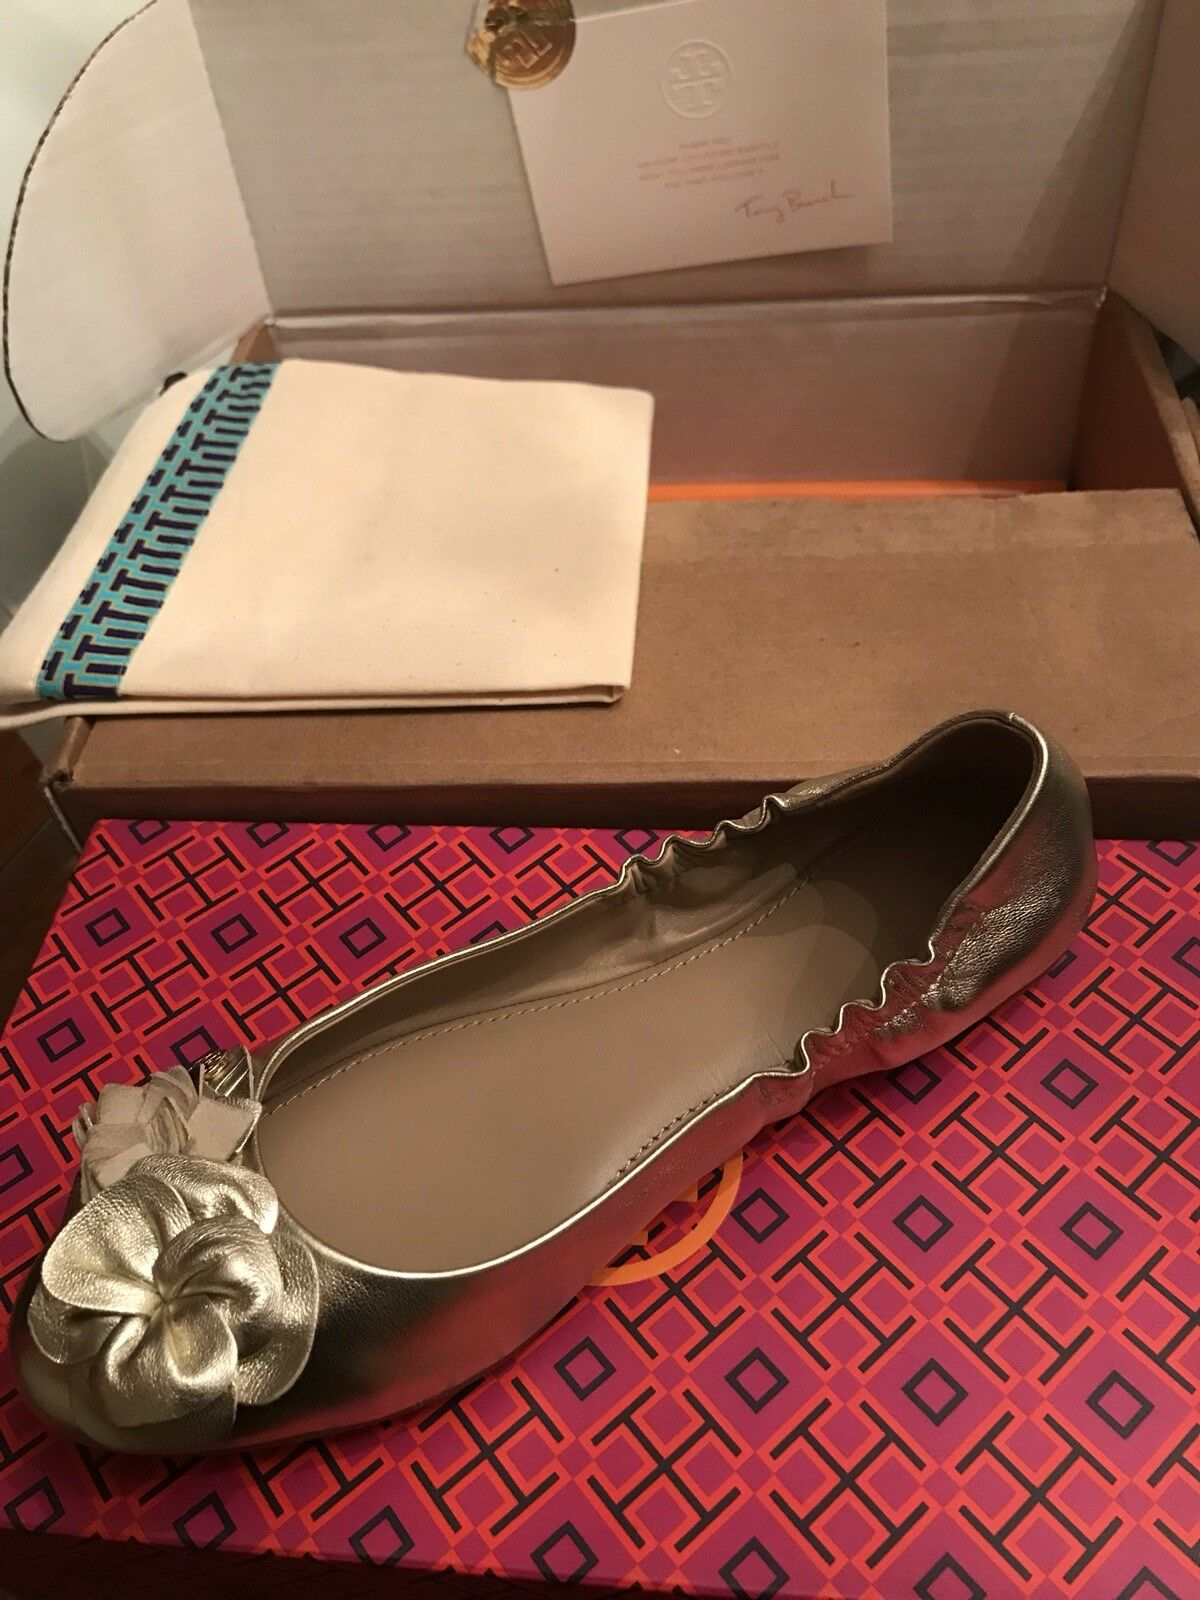 New tory tory tory burch shoes size 7, 100% Authentic 8c906c